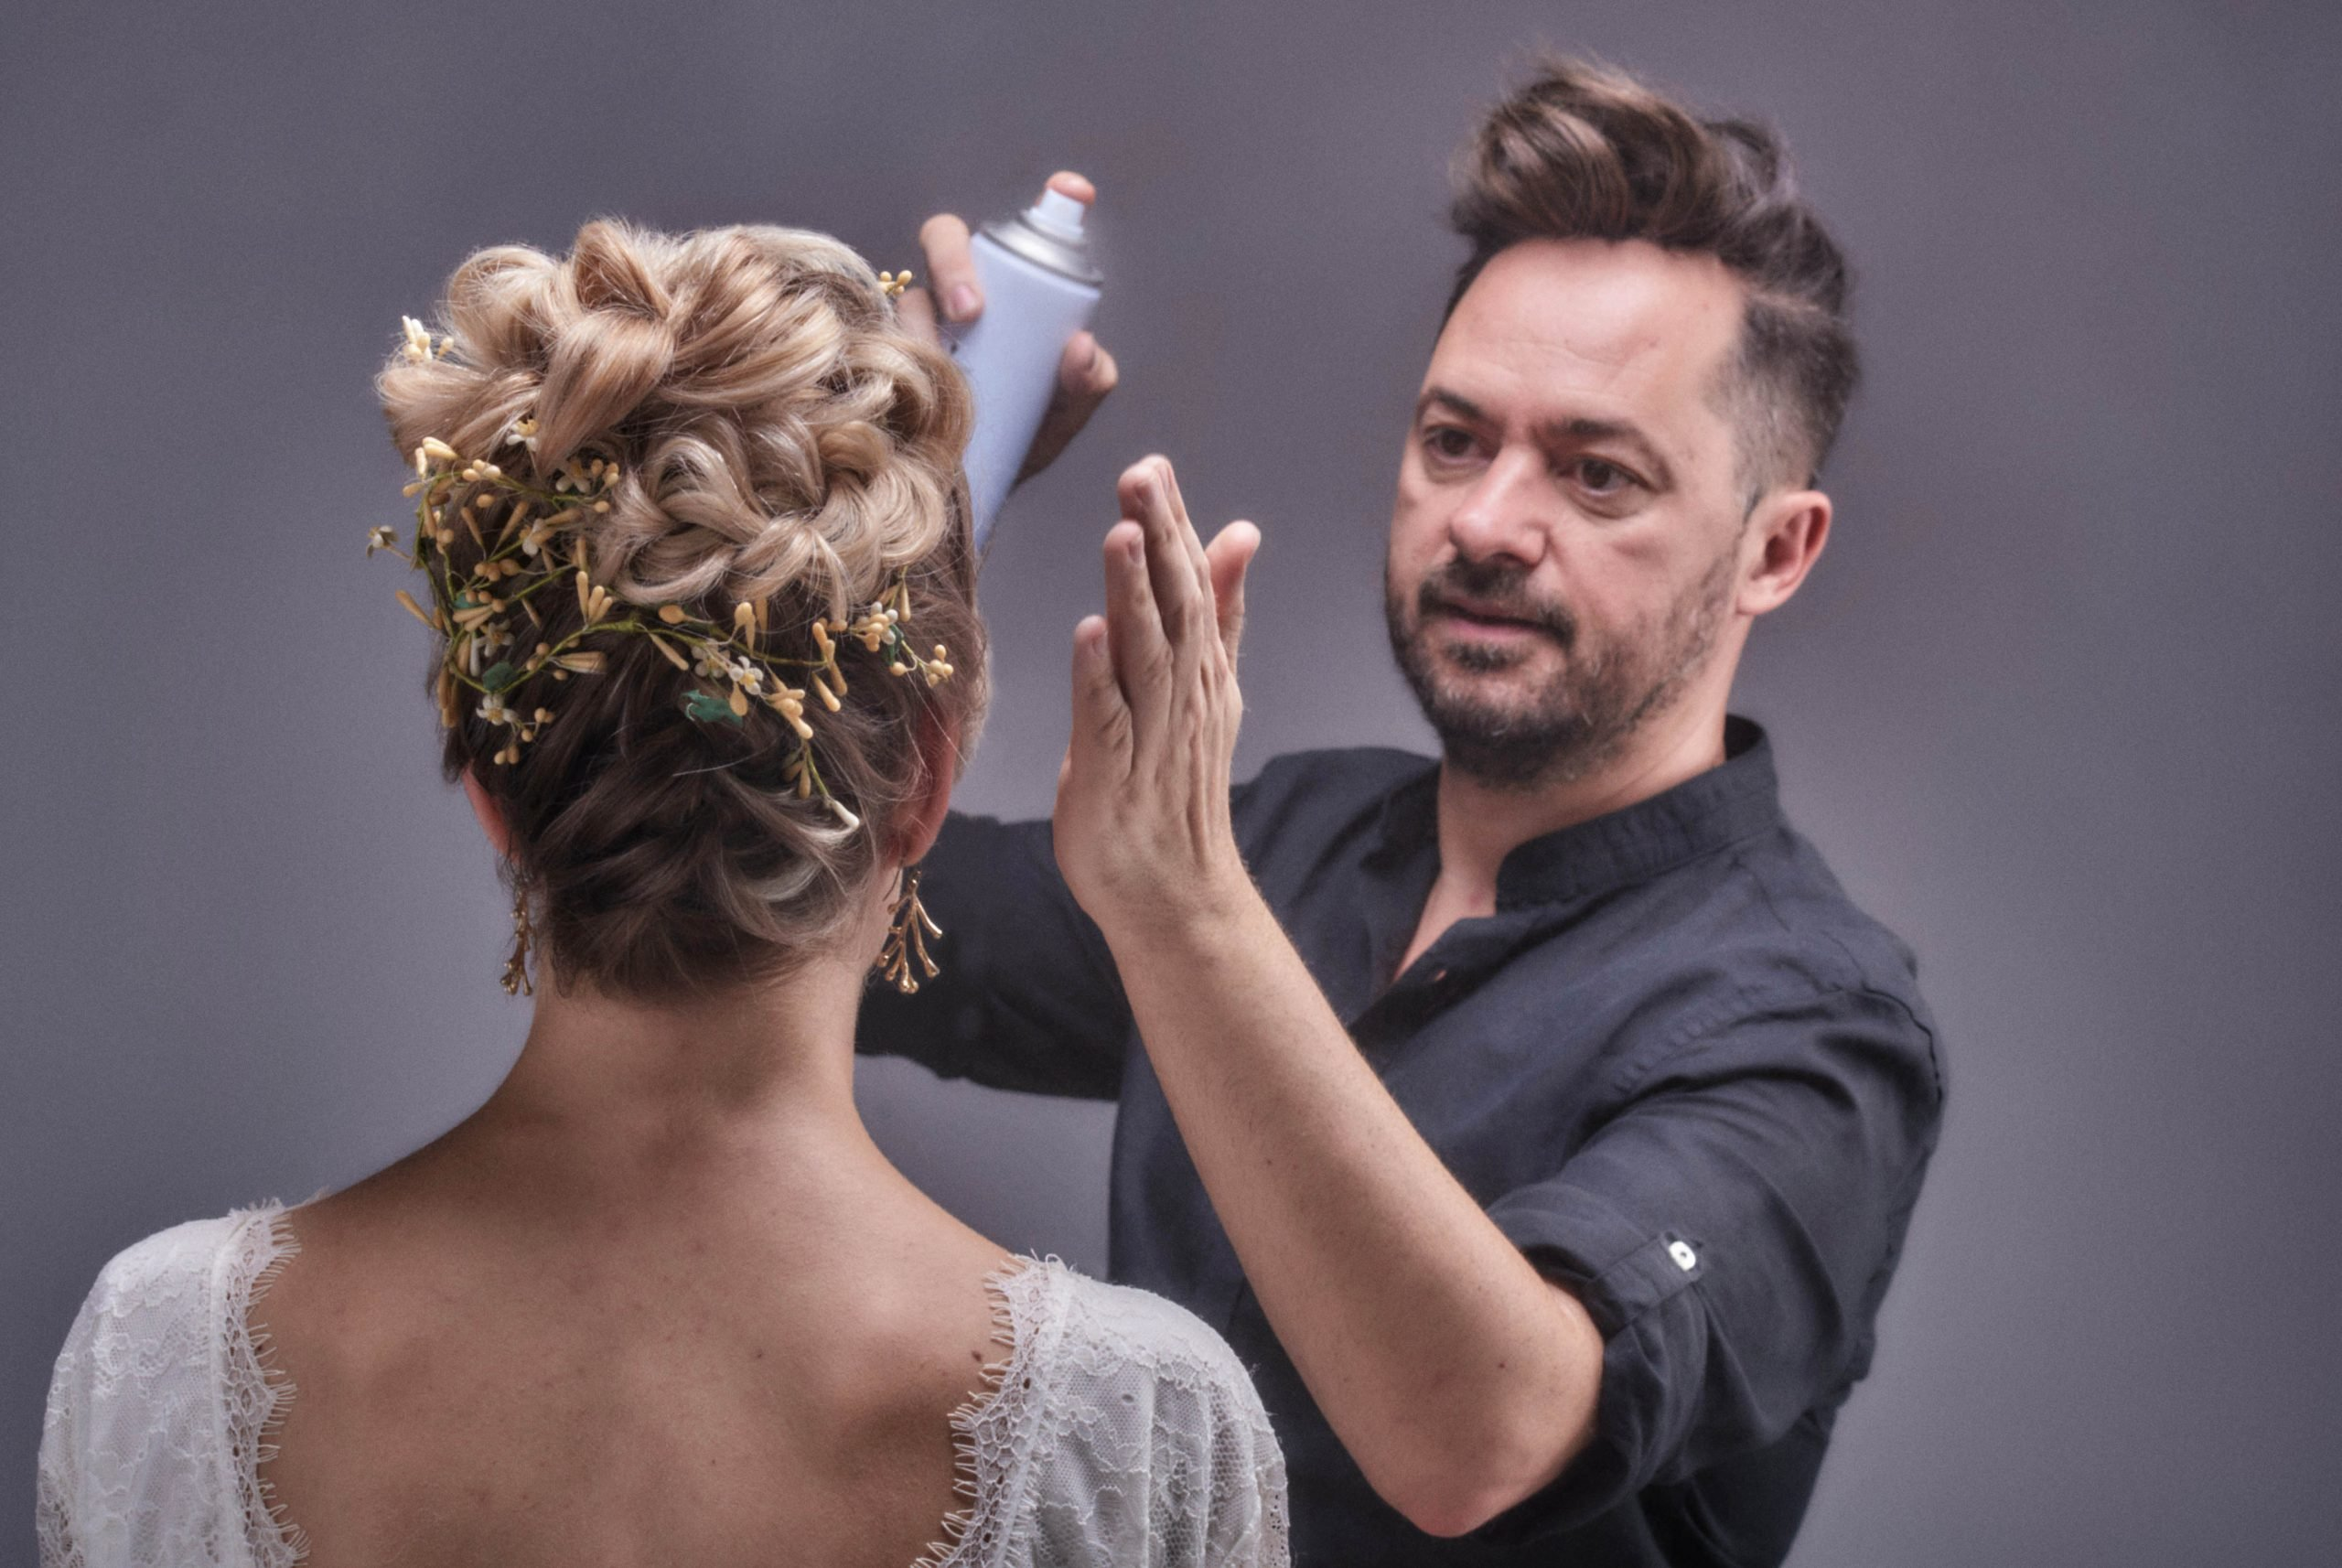 Crossed braids Up-Do with Juanmy Medialdea